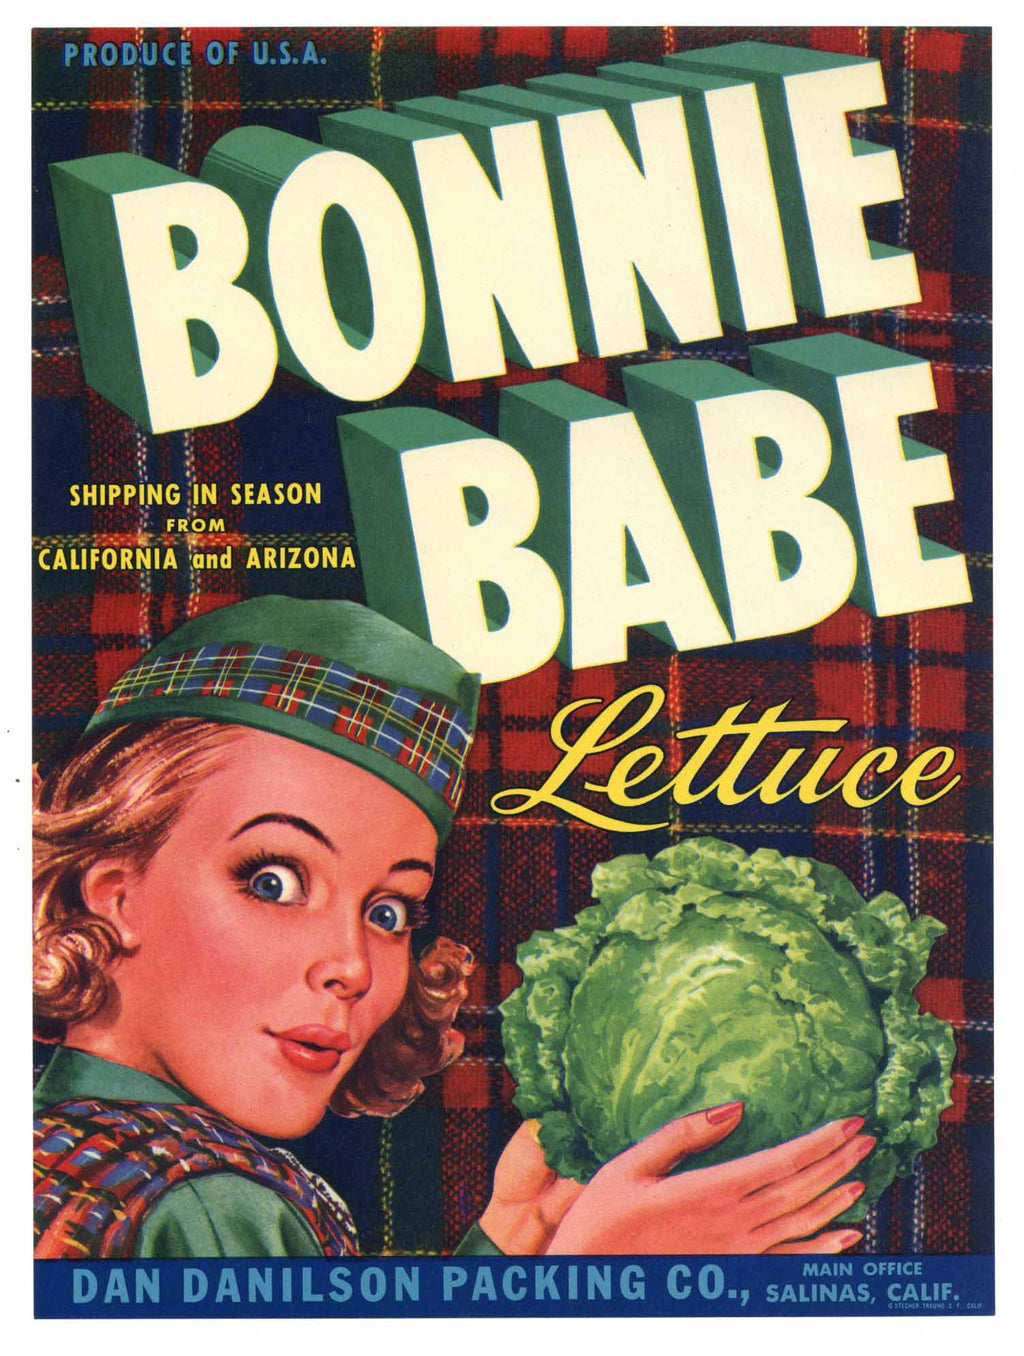 Bonnie Babe Brand Vintage Salinas Vegetable Crate Label